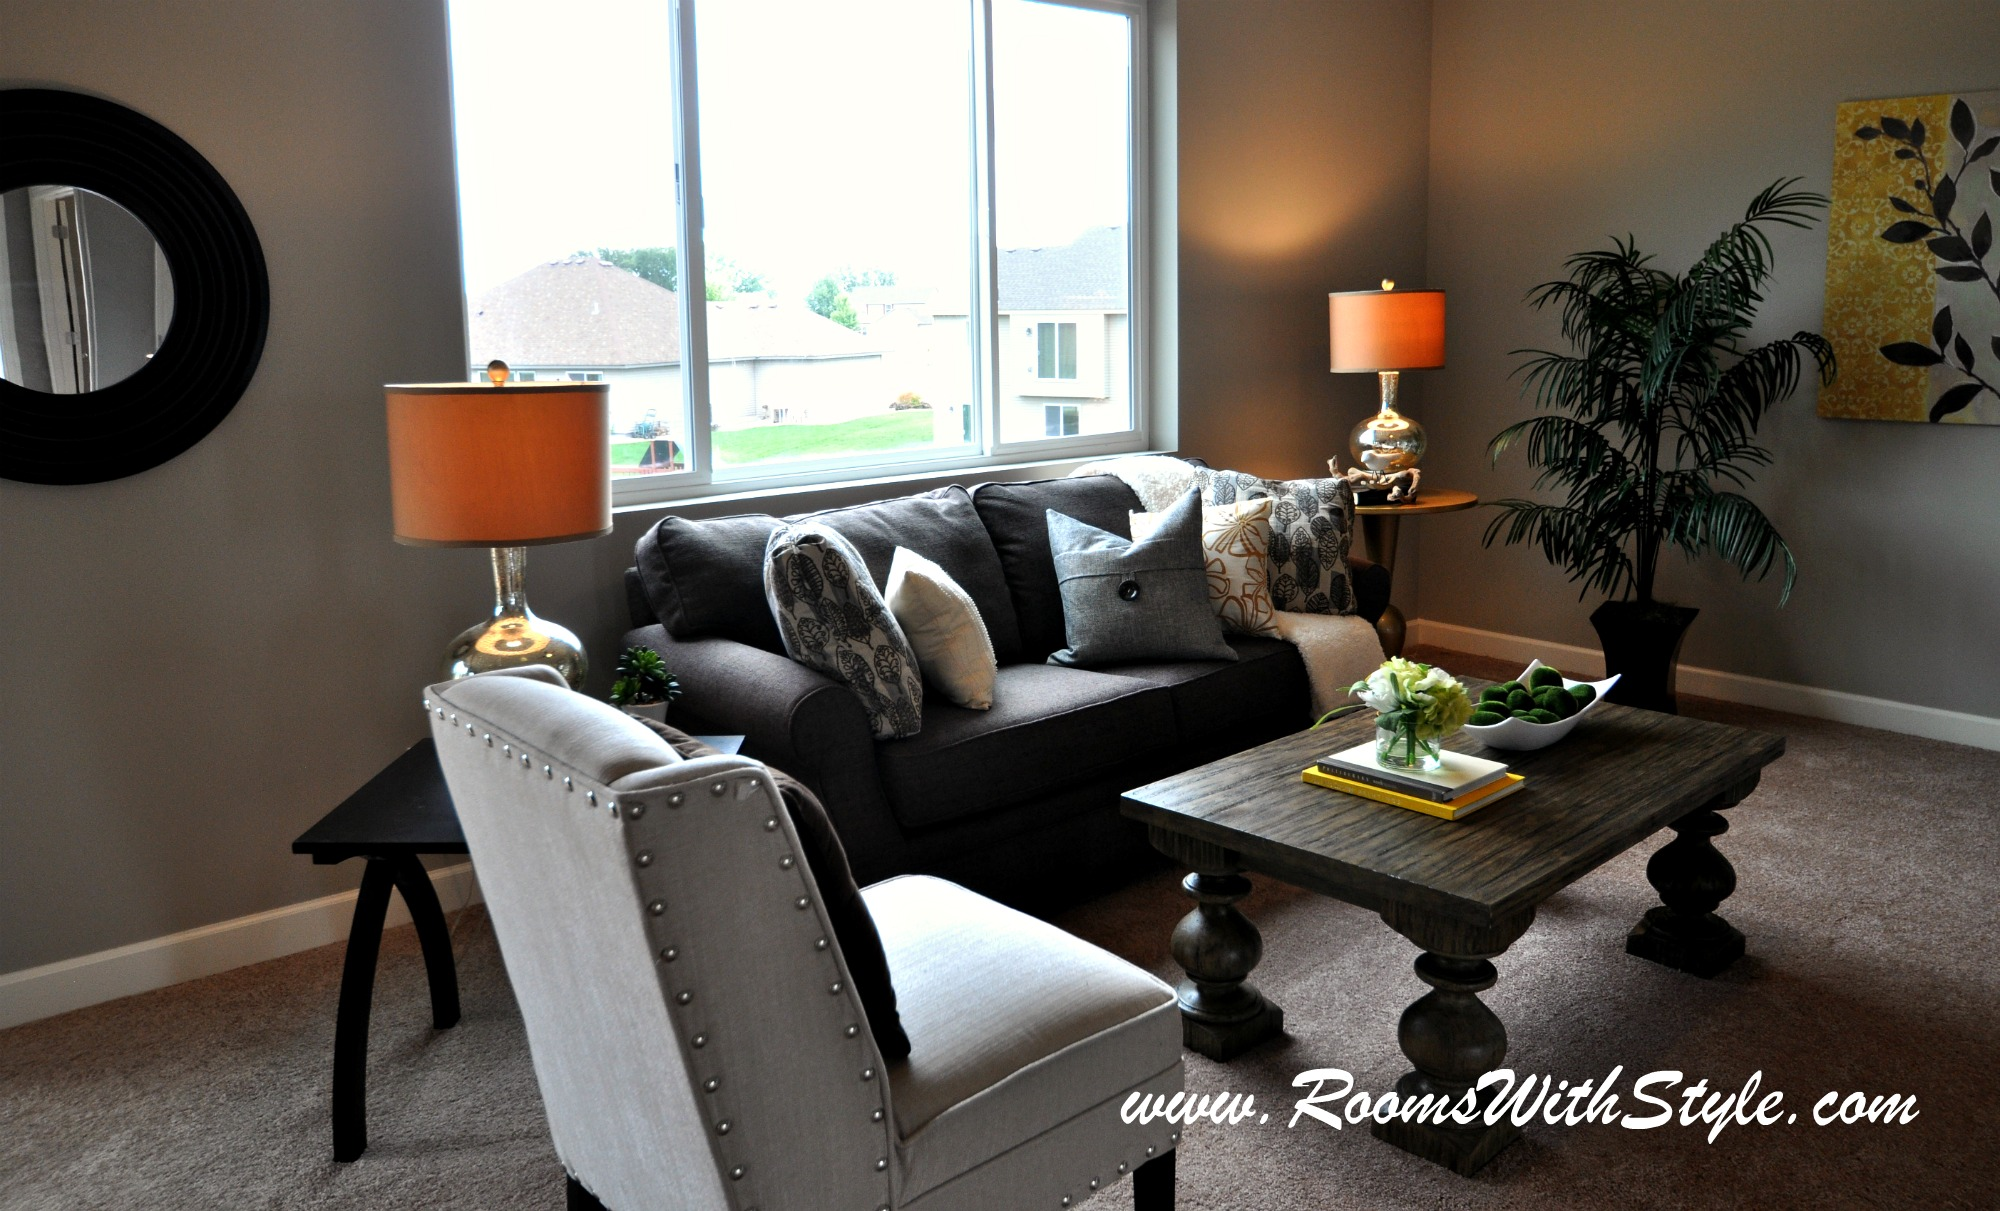 It is parade of homes time homesmsp for Staged living room ideas